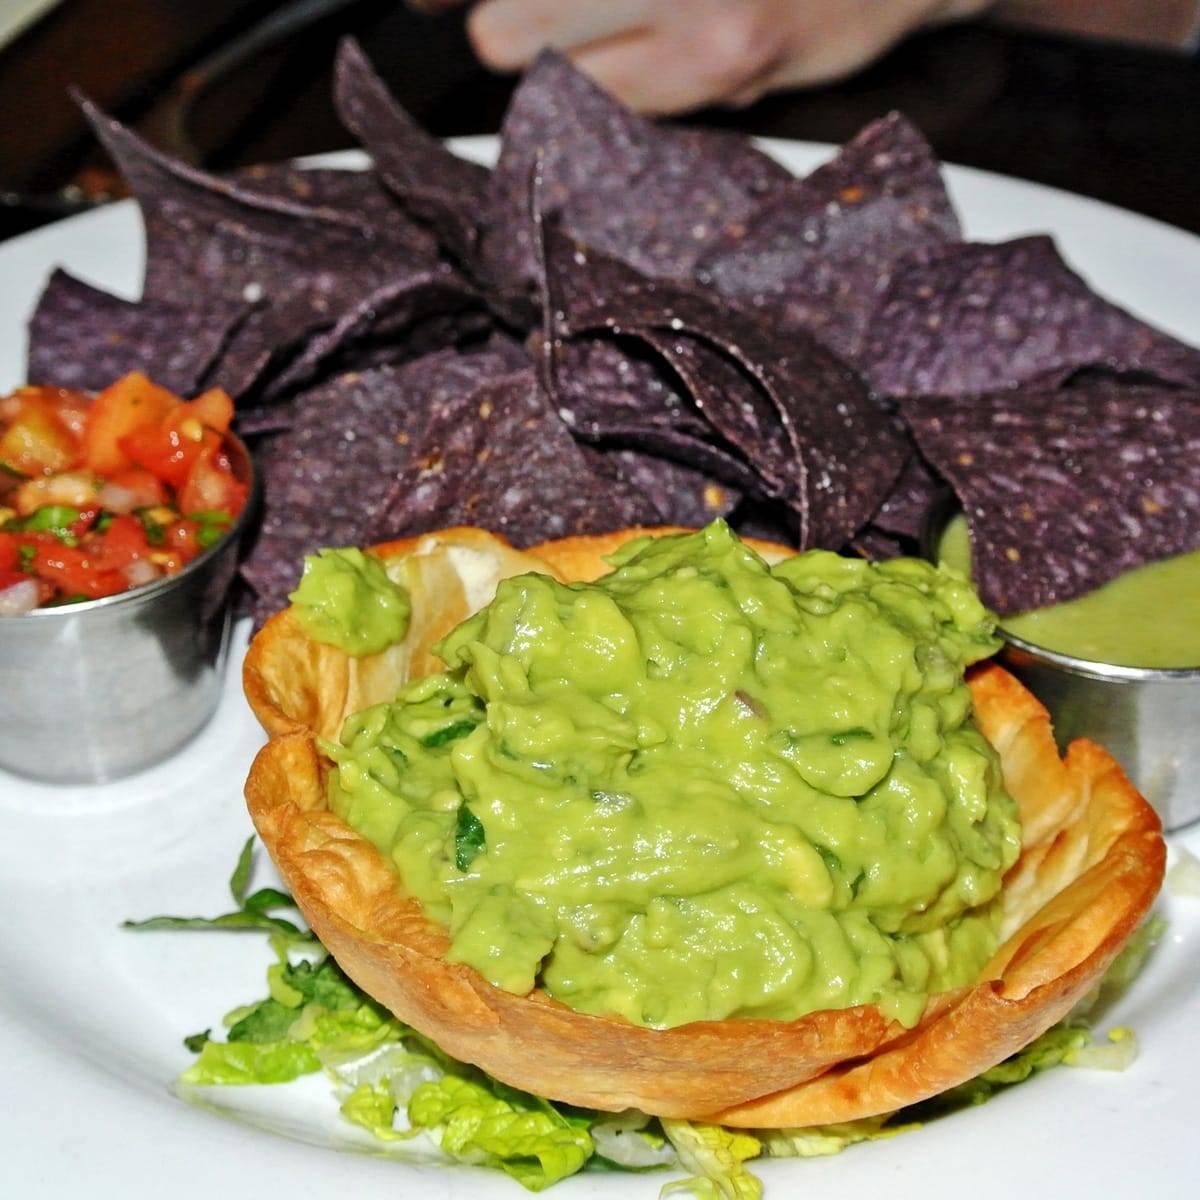 Boozy Mexican Brunch with Unlimited Margs at Agave in the West Village